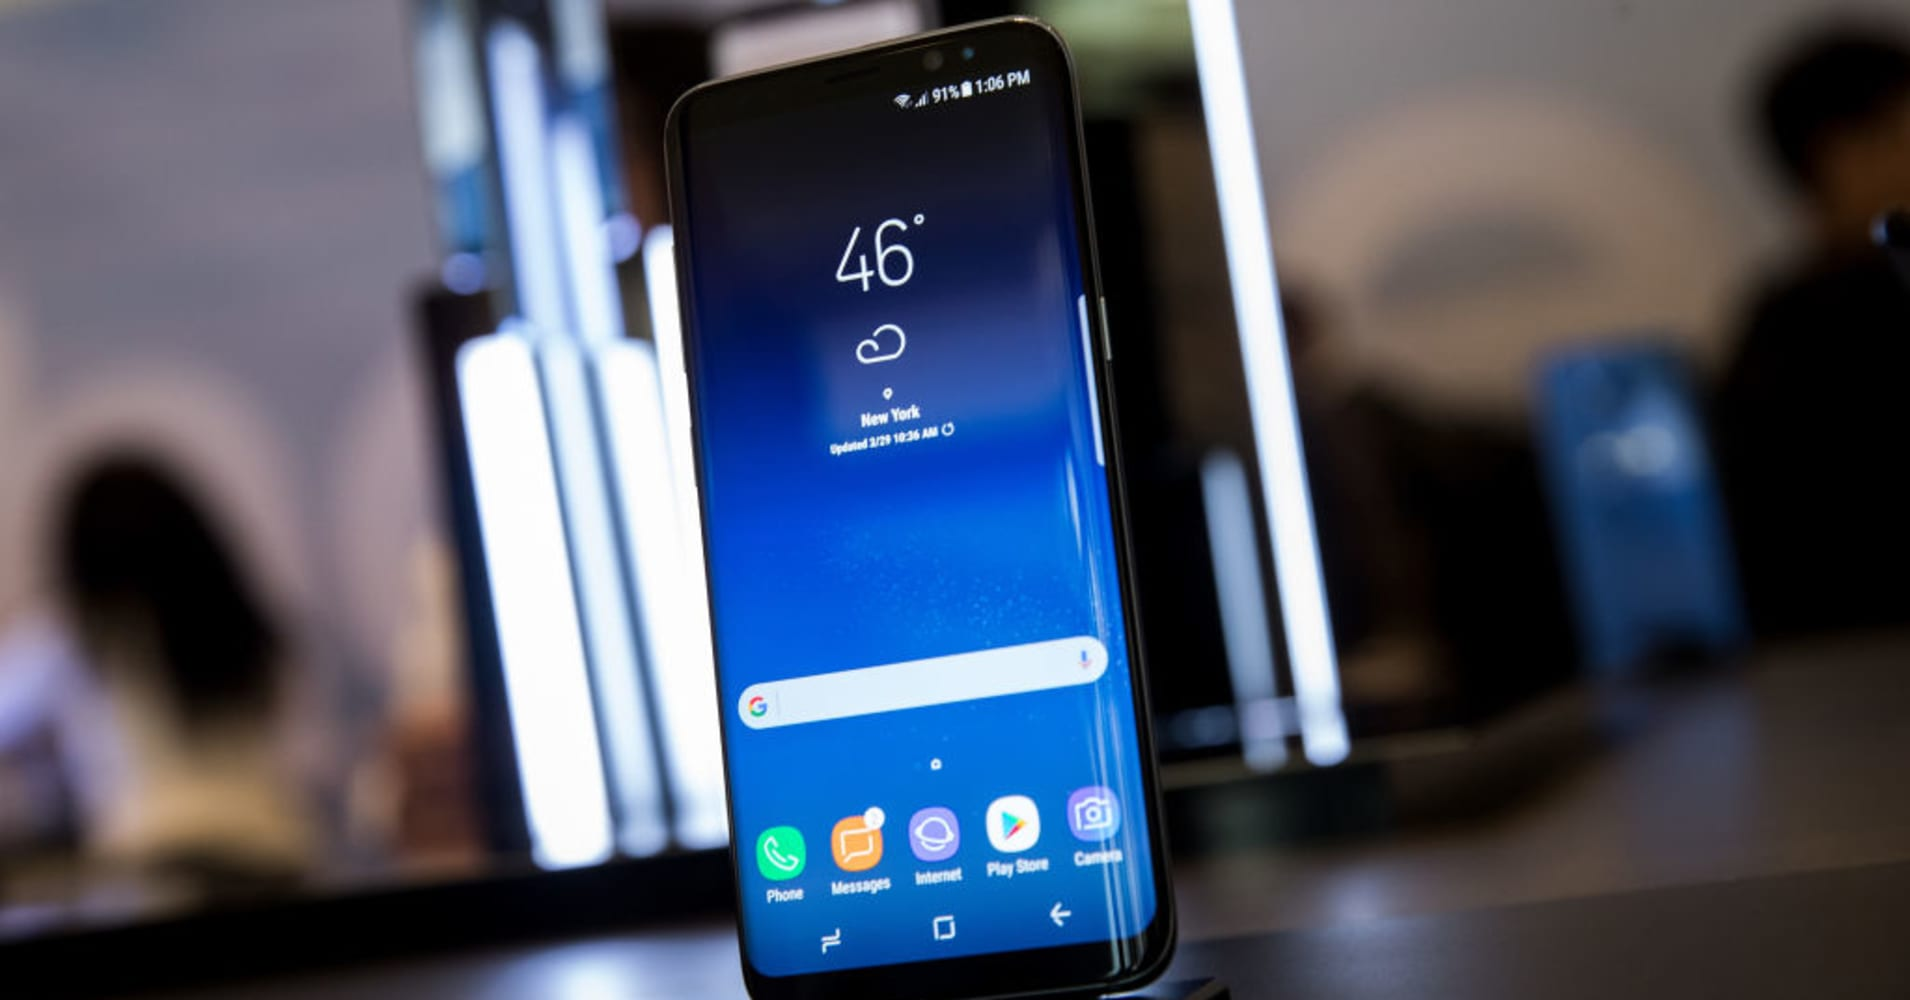 Samsung says it's fixing the one flaw users found in the Galaxy S8